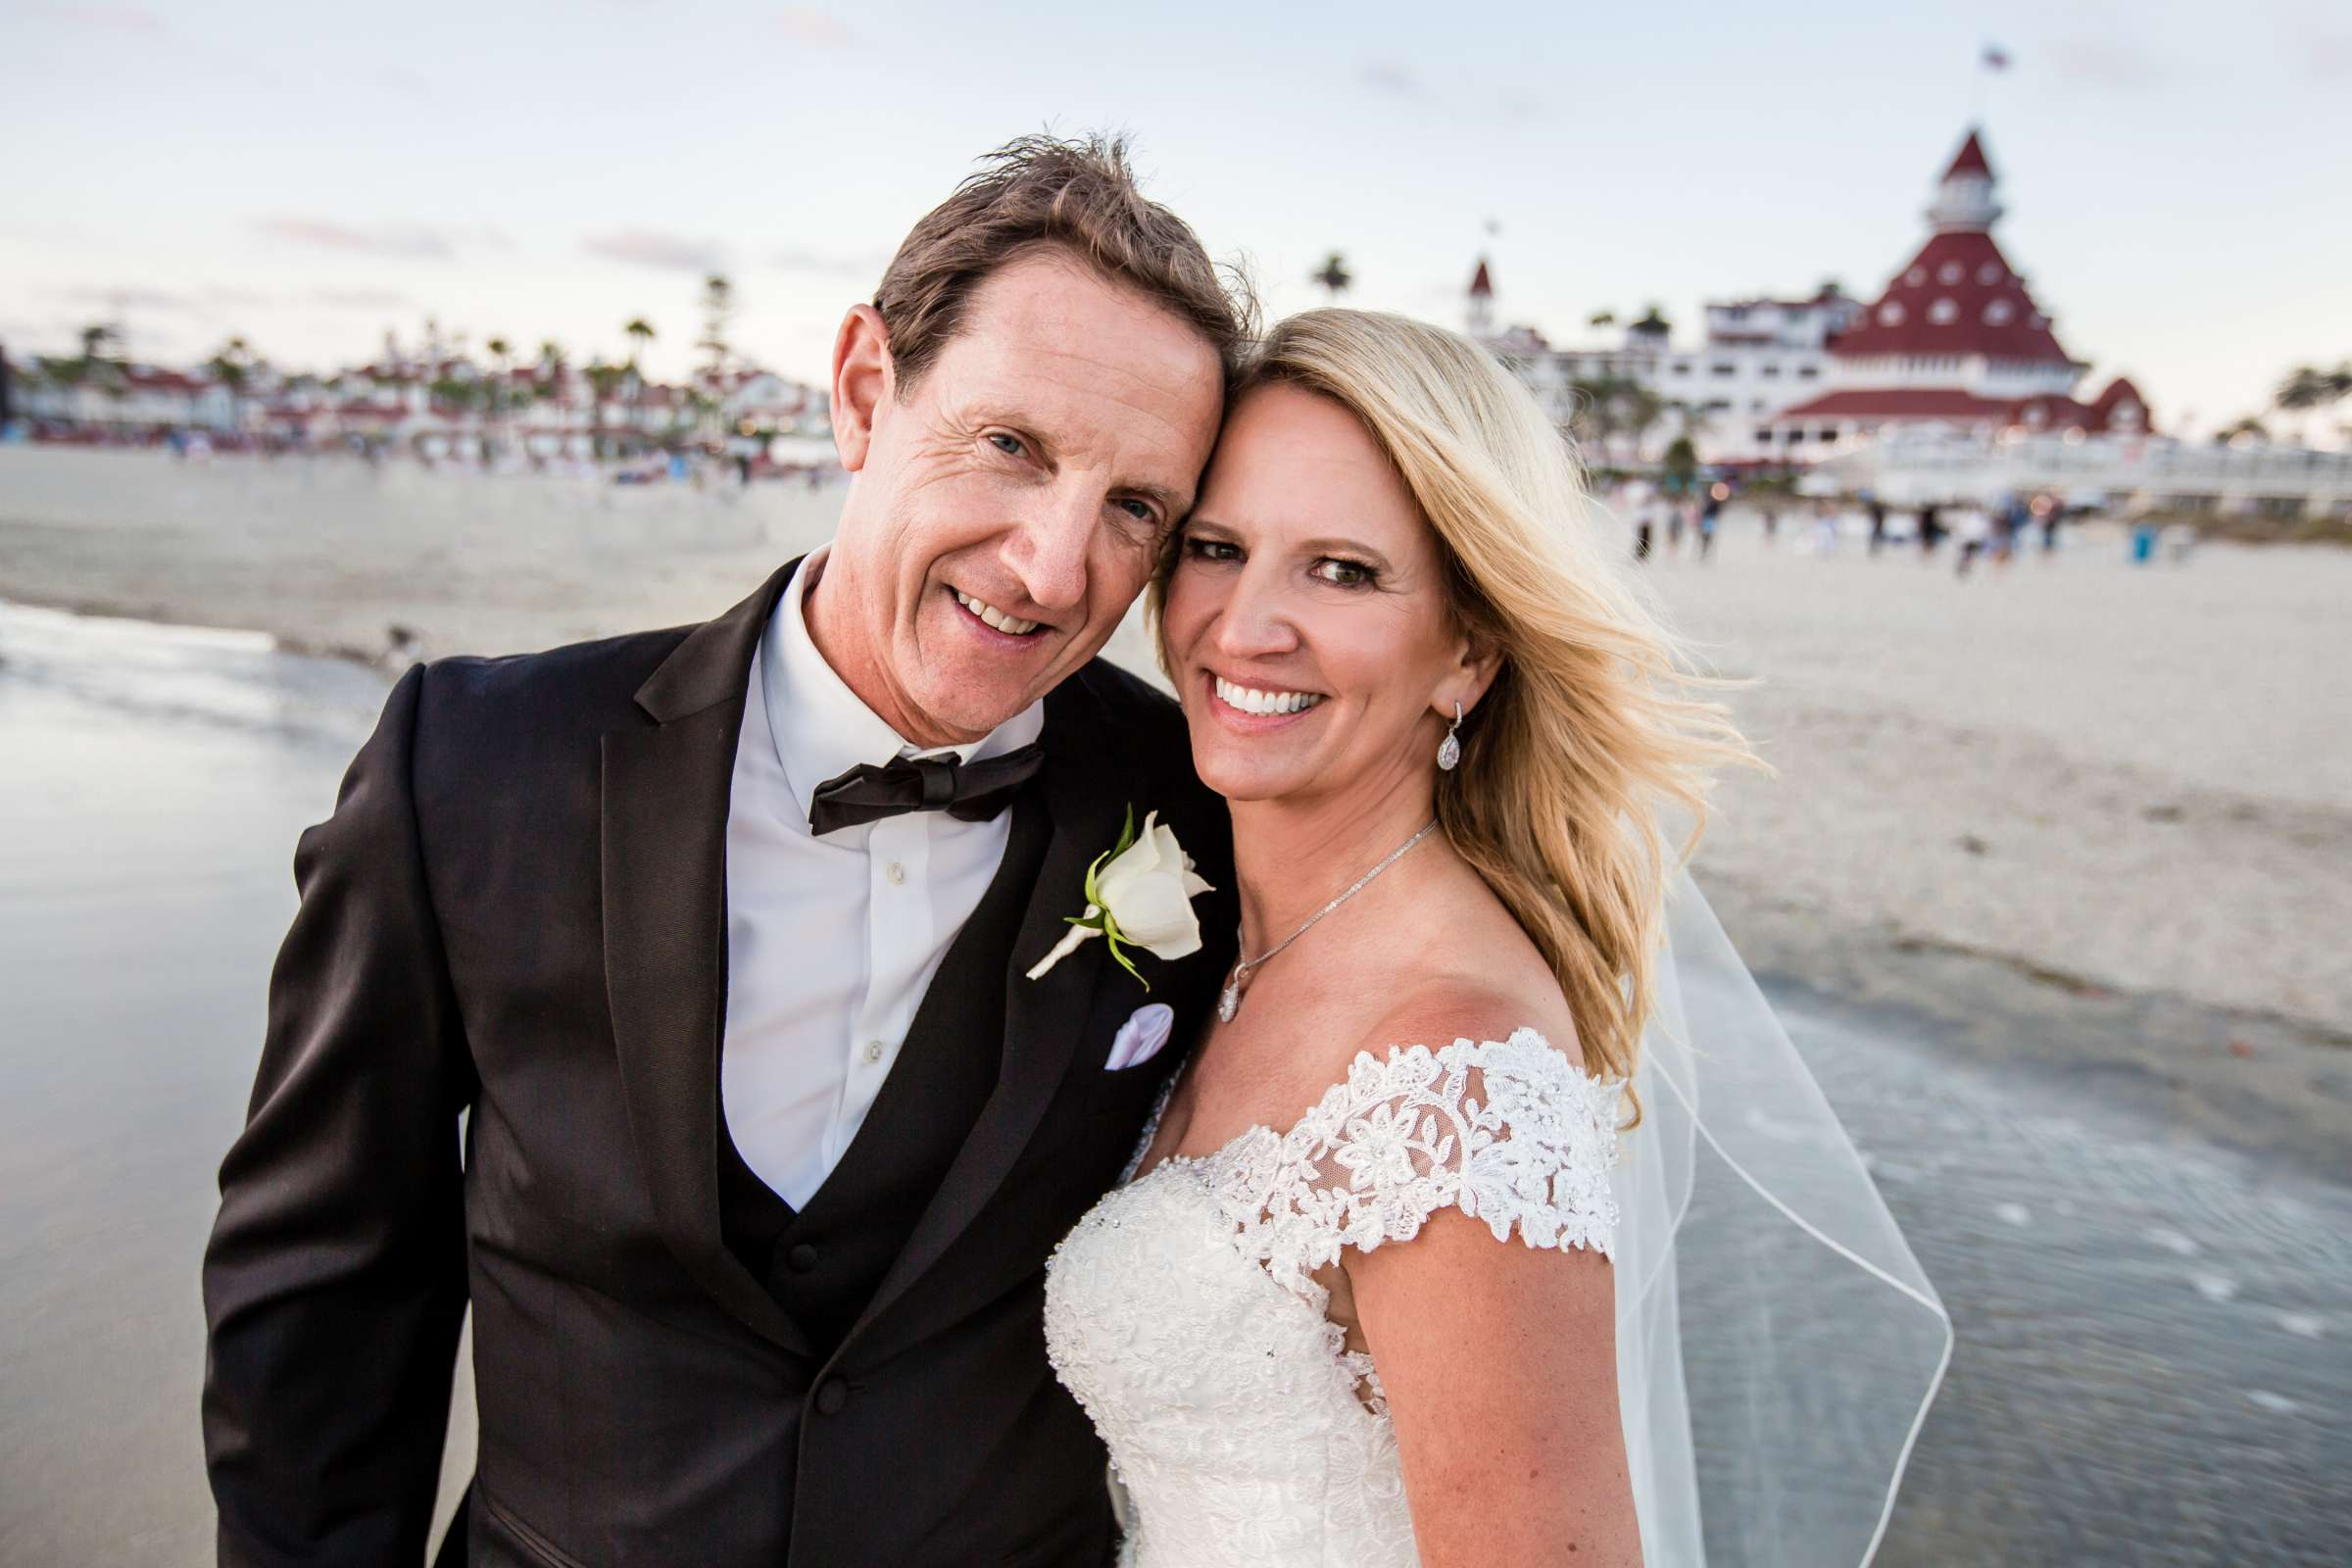 Hotel Del Coronado Wedding coordinated by Creative Affairs Inc, Diane and Paul Wedding Photo #74 by True Photography